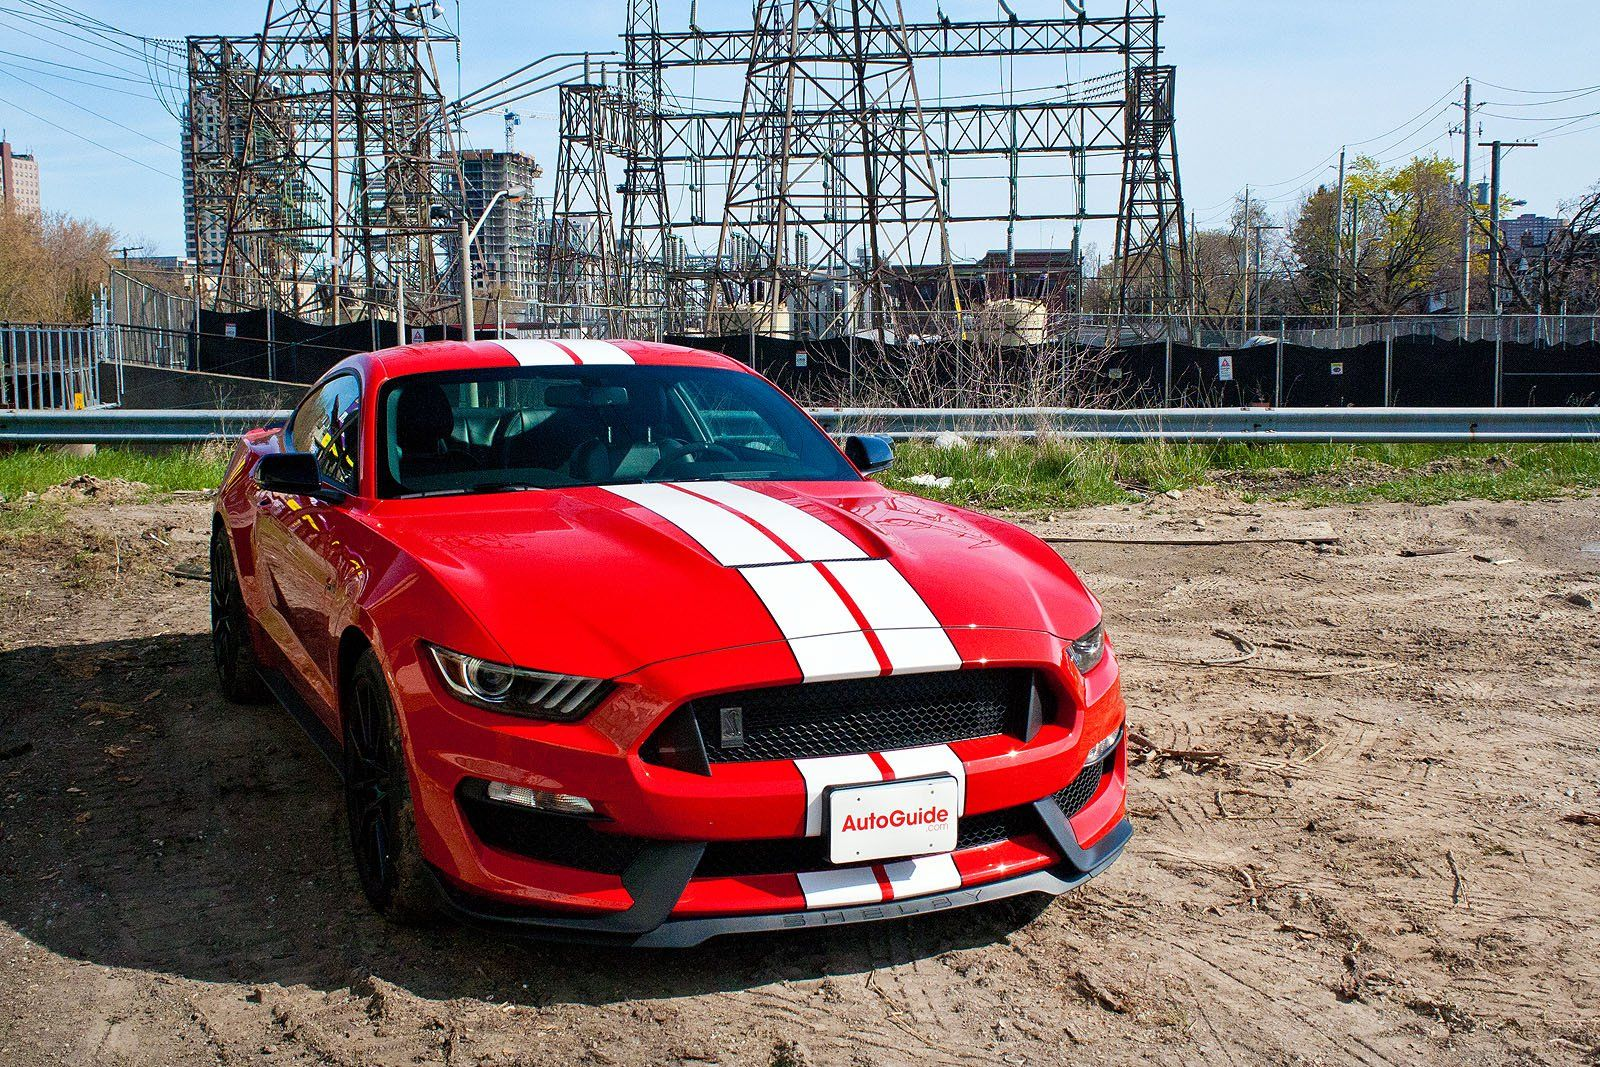 2016 Ford Mustang Shelby GT350 10 Things You Learn While Driving The Beast